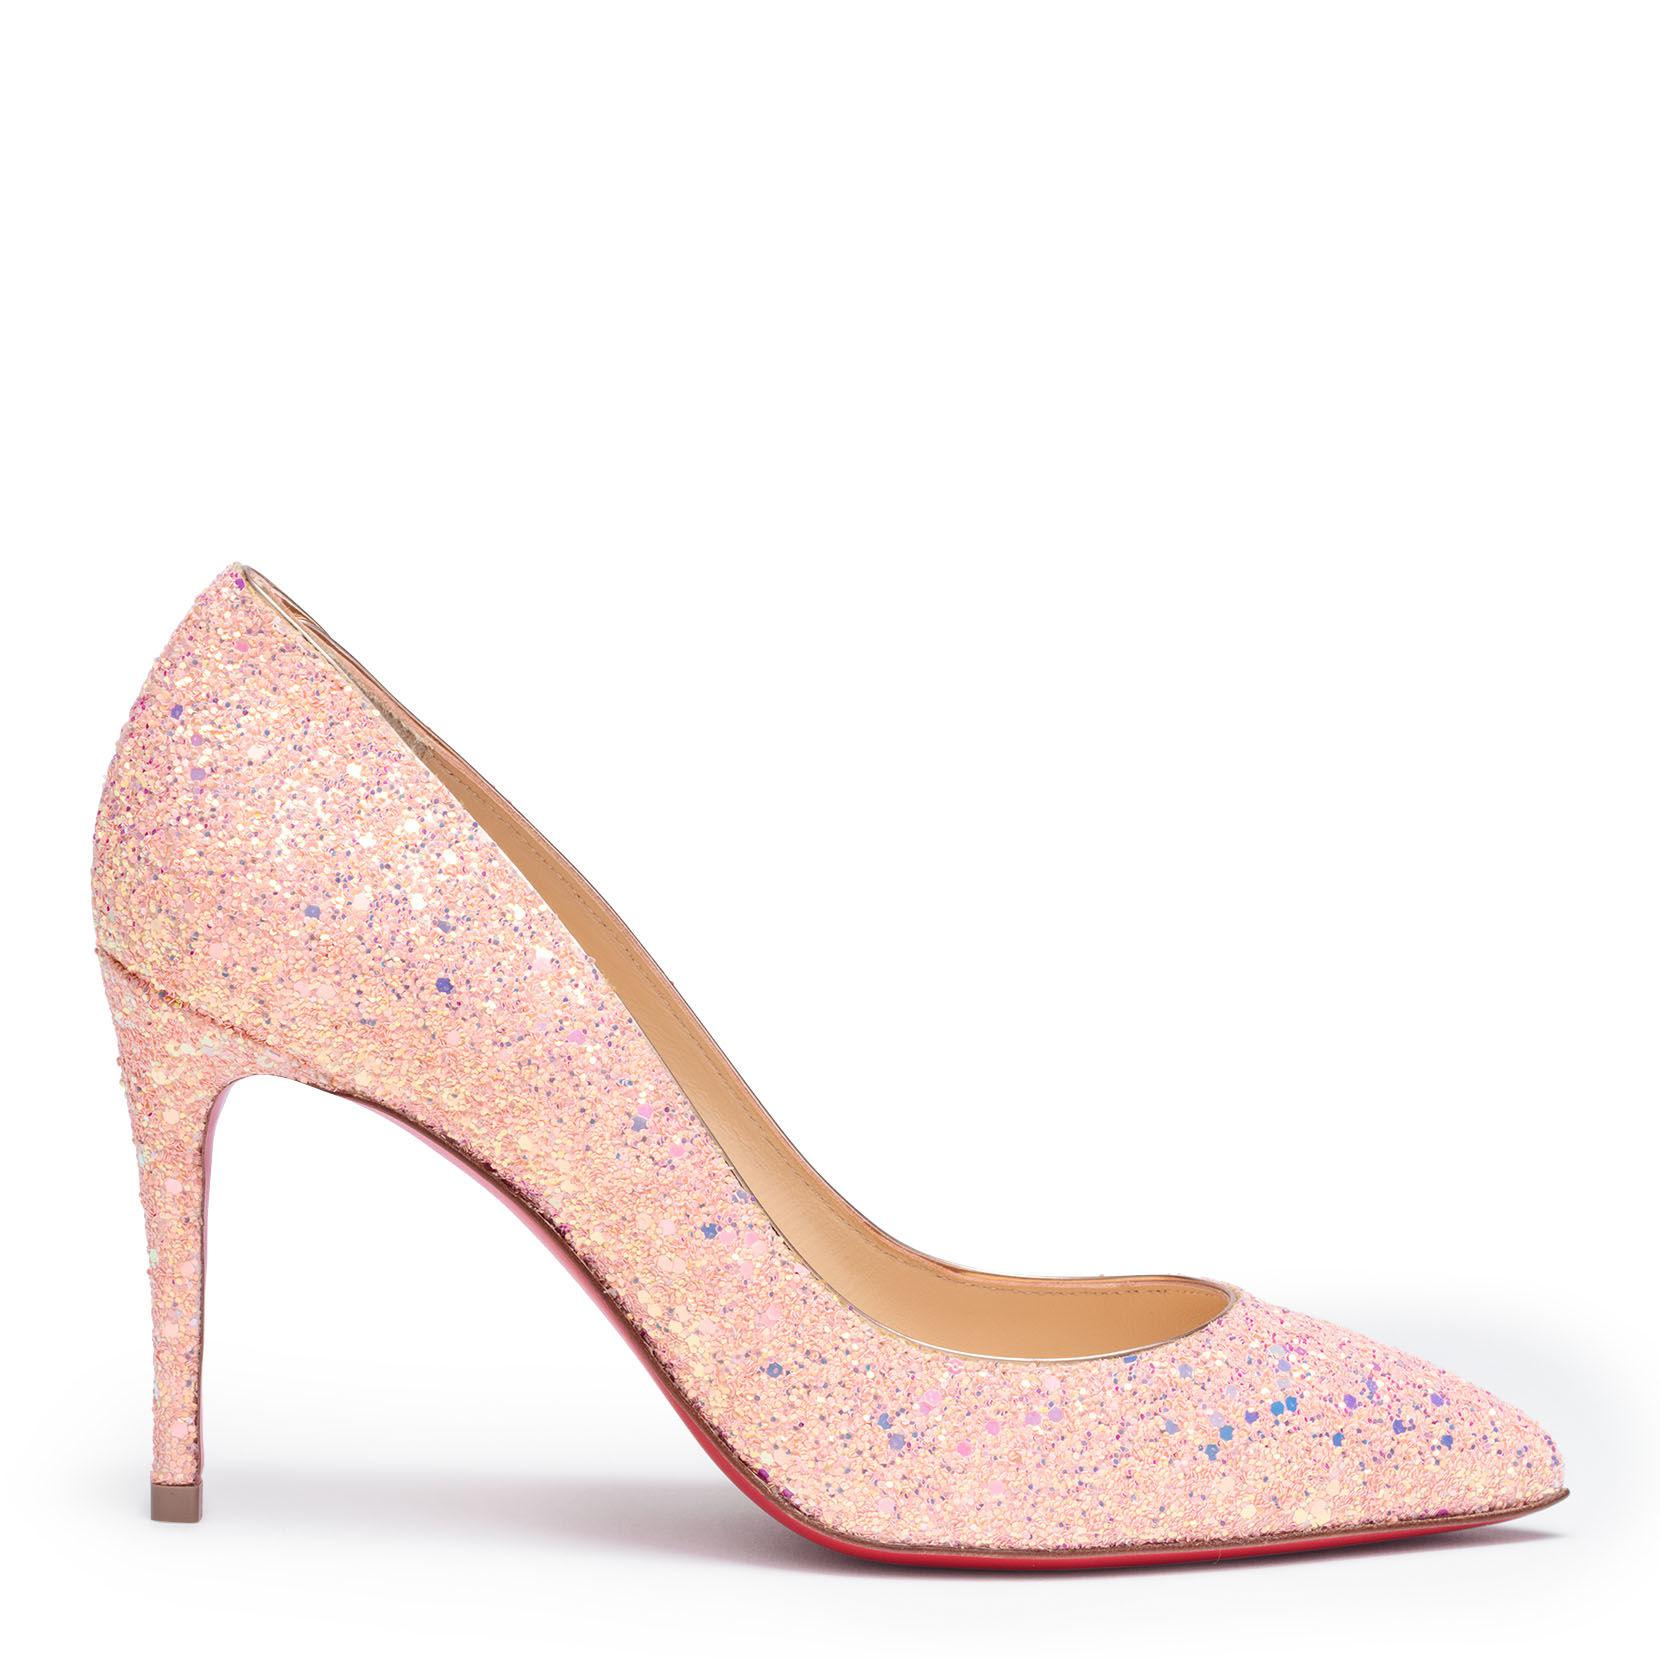 premium selection 667b5 65b57 Women's Pigalle Follies 85 Pink Glitter Pumps